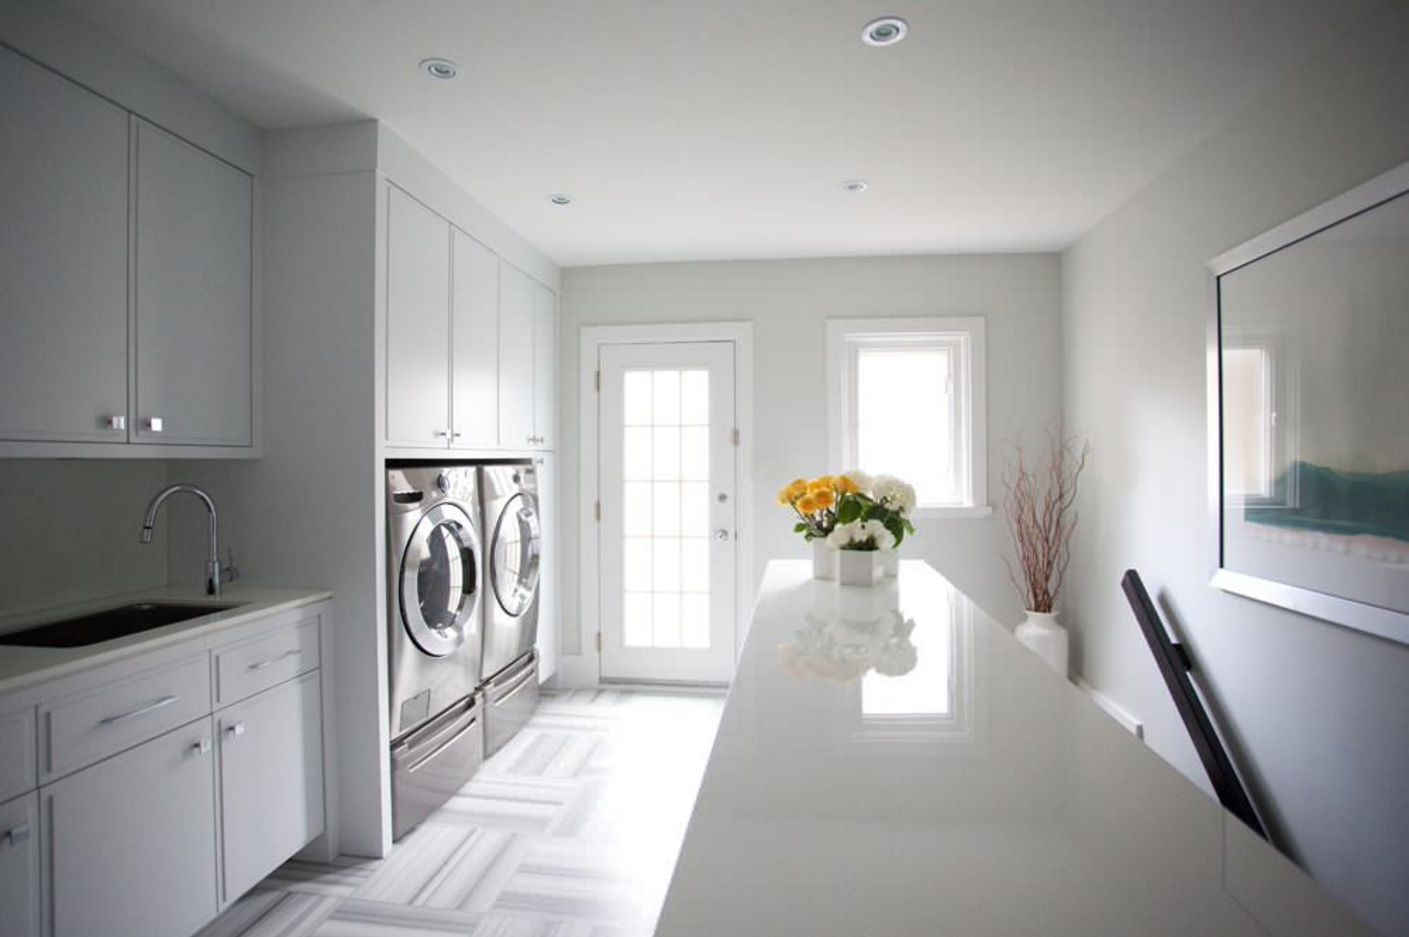 Laundry Allocation Options for Modern Home Interior. Second floor zone near the stairs